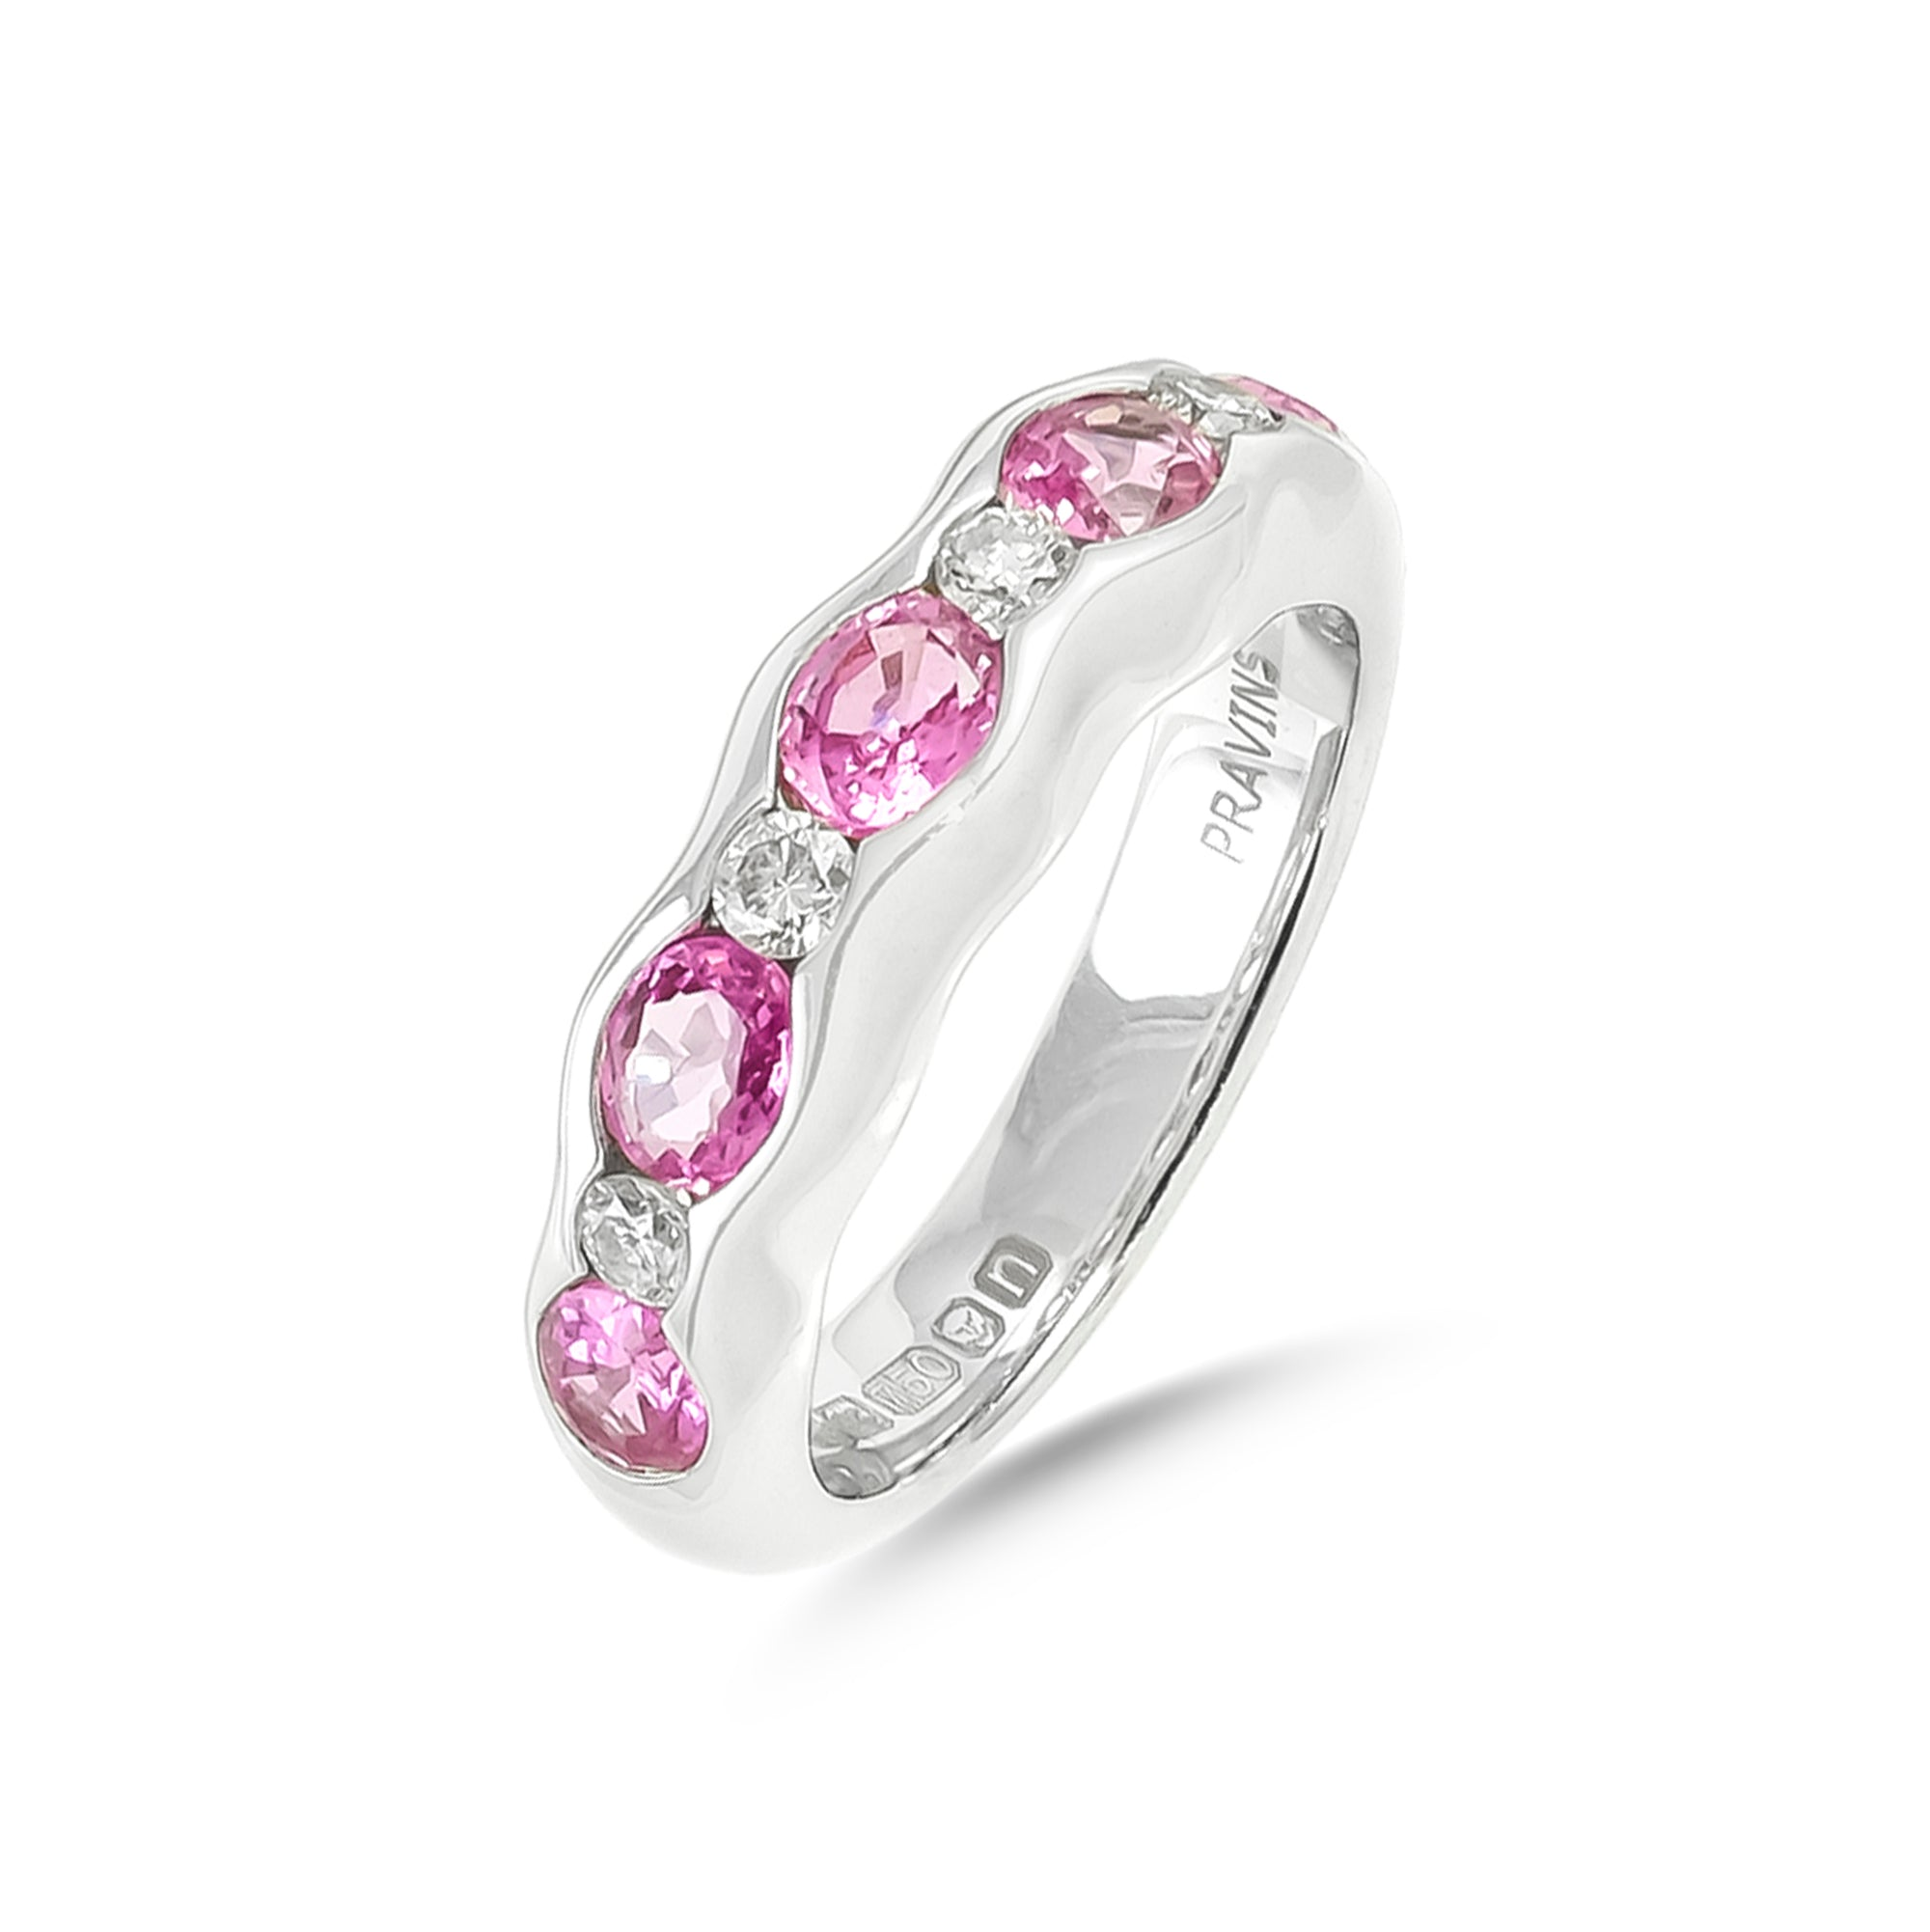 Vintage 18ct White Gold Tourmaline and Diamond Ring